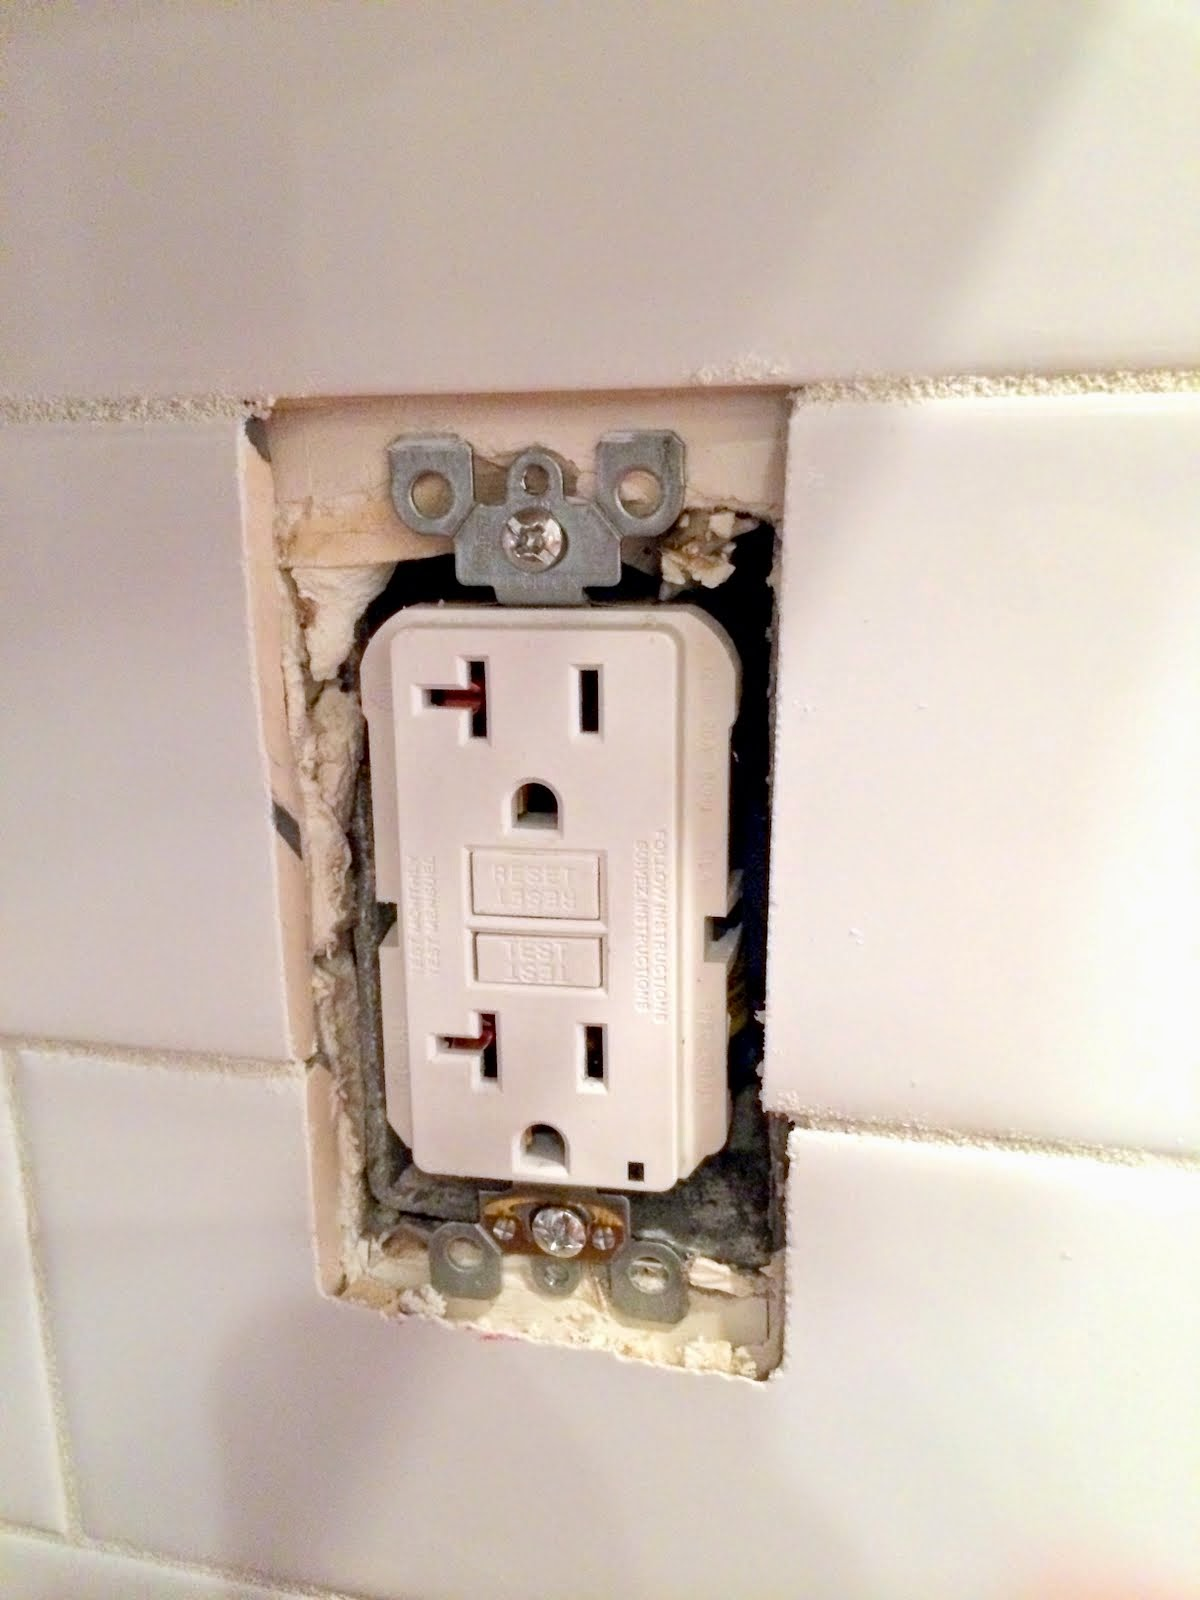 How To Extend An Outlet After Tiling And Fix A Loose Outlet